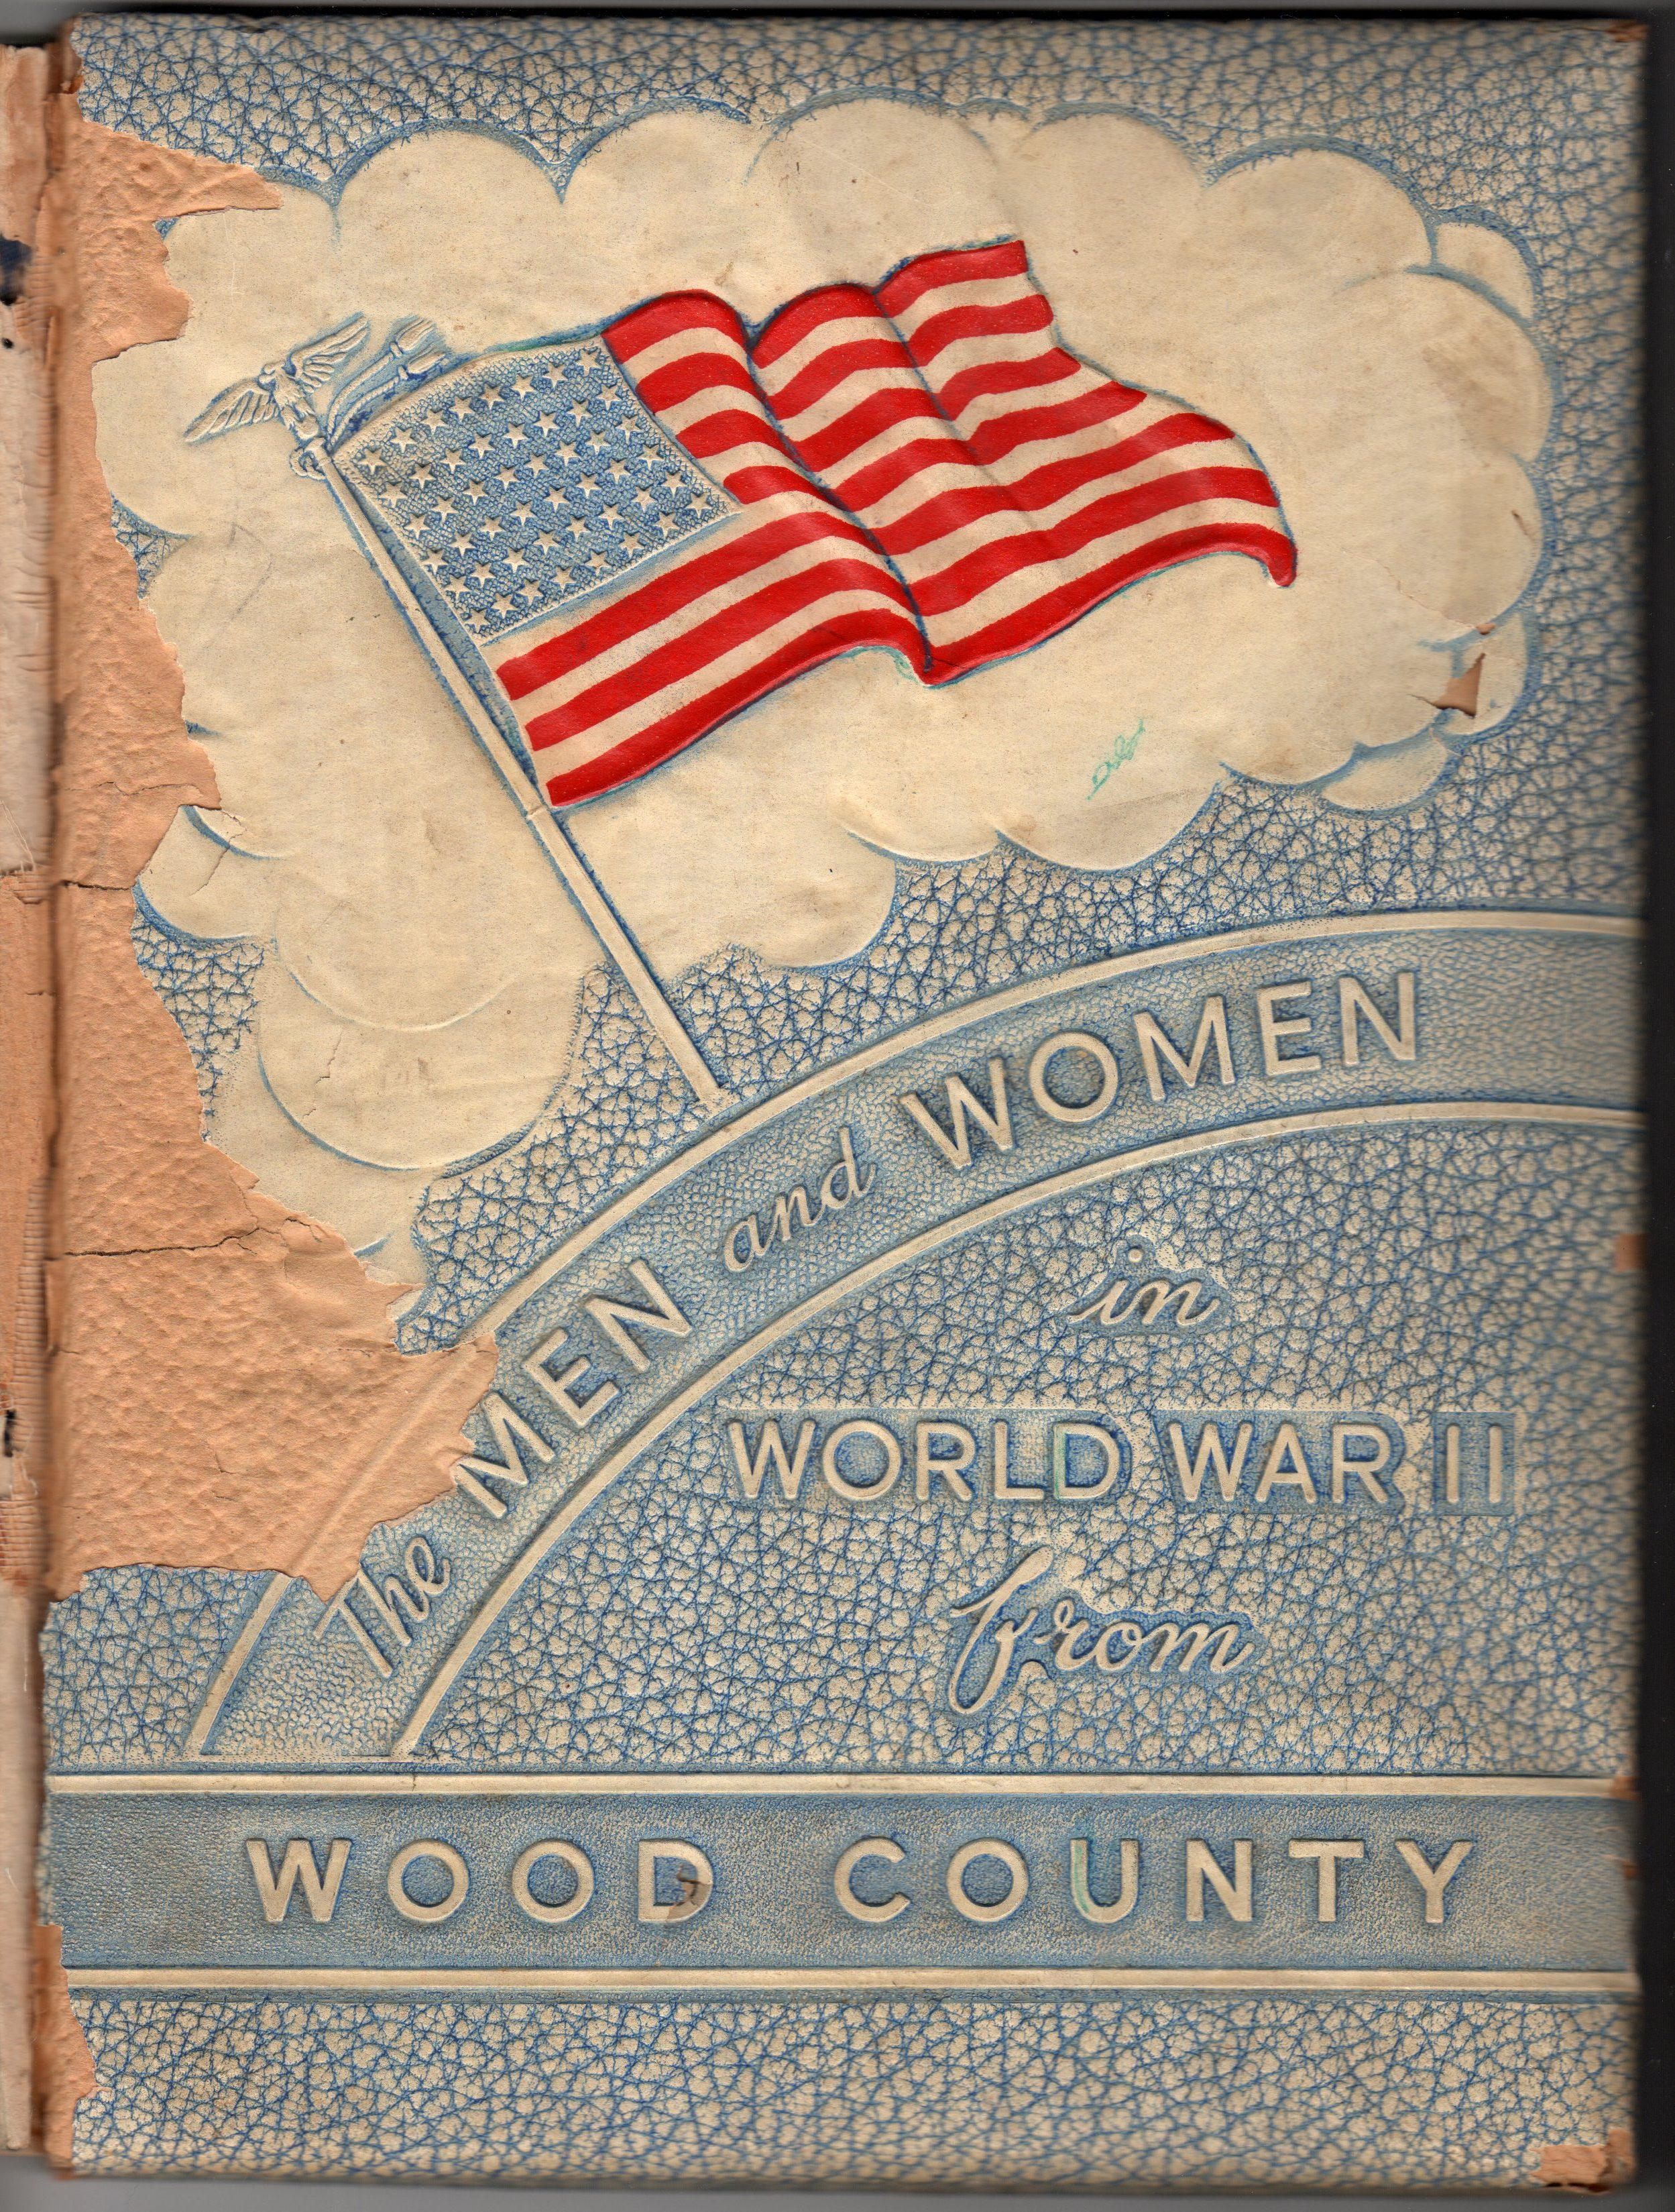 Men and women in the Armed Forces from Woods County Texas